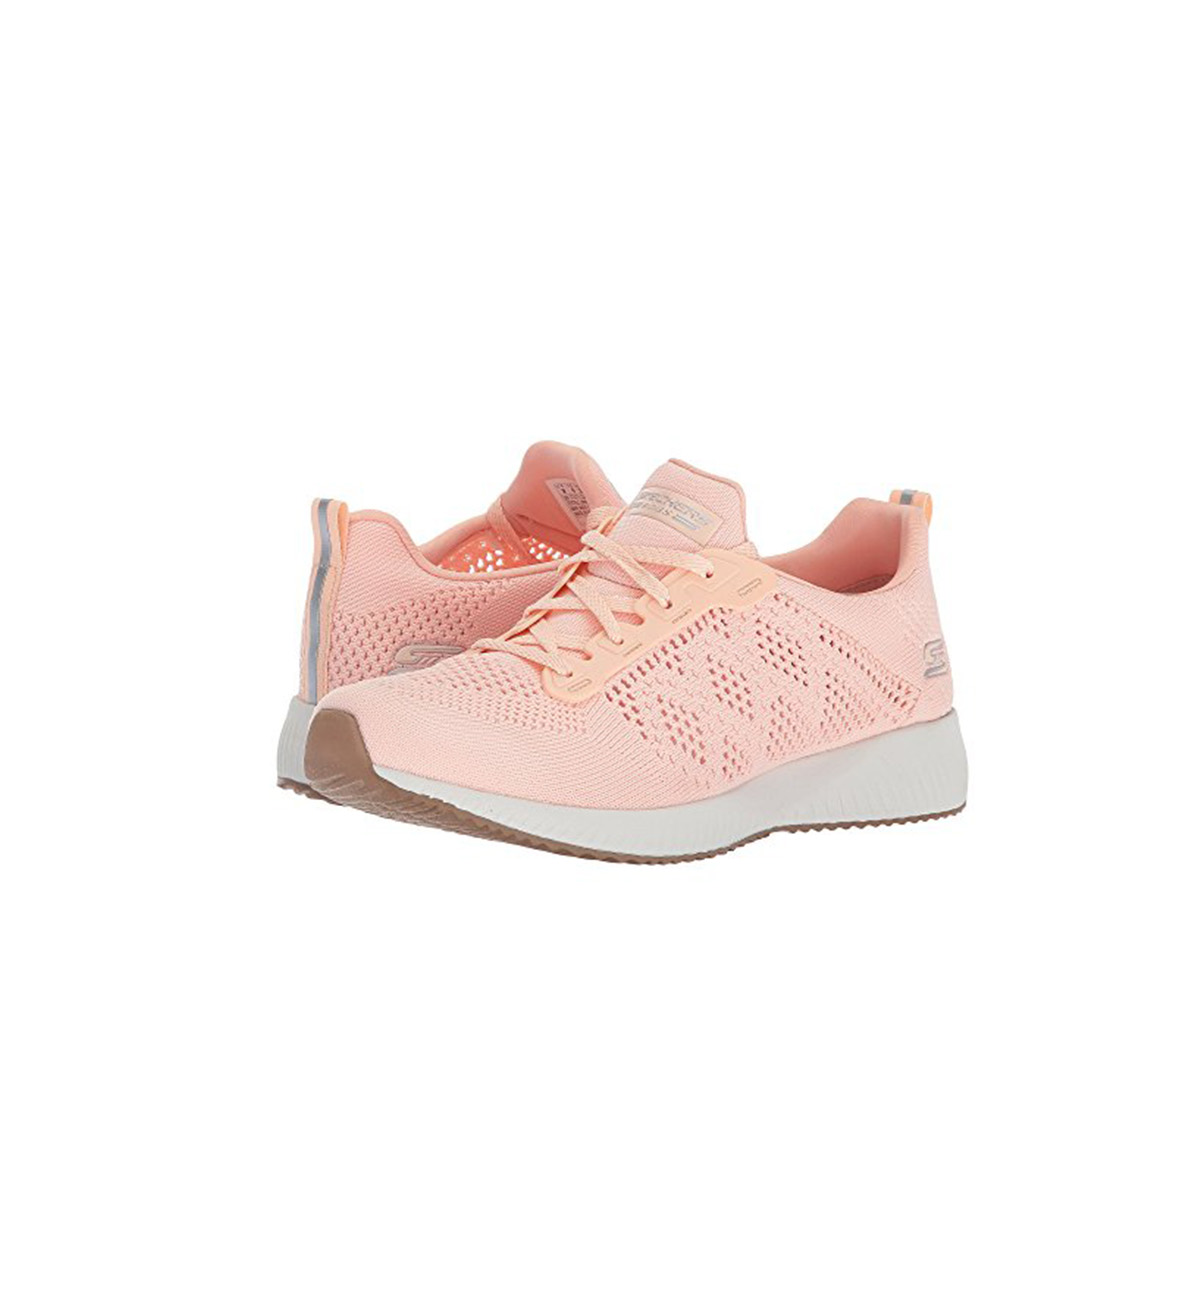 Sketches Bob Squad Pink Sneakers